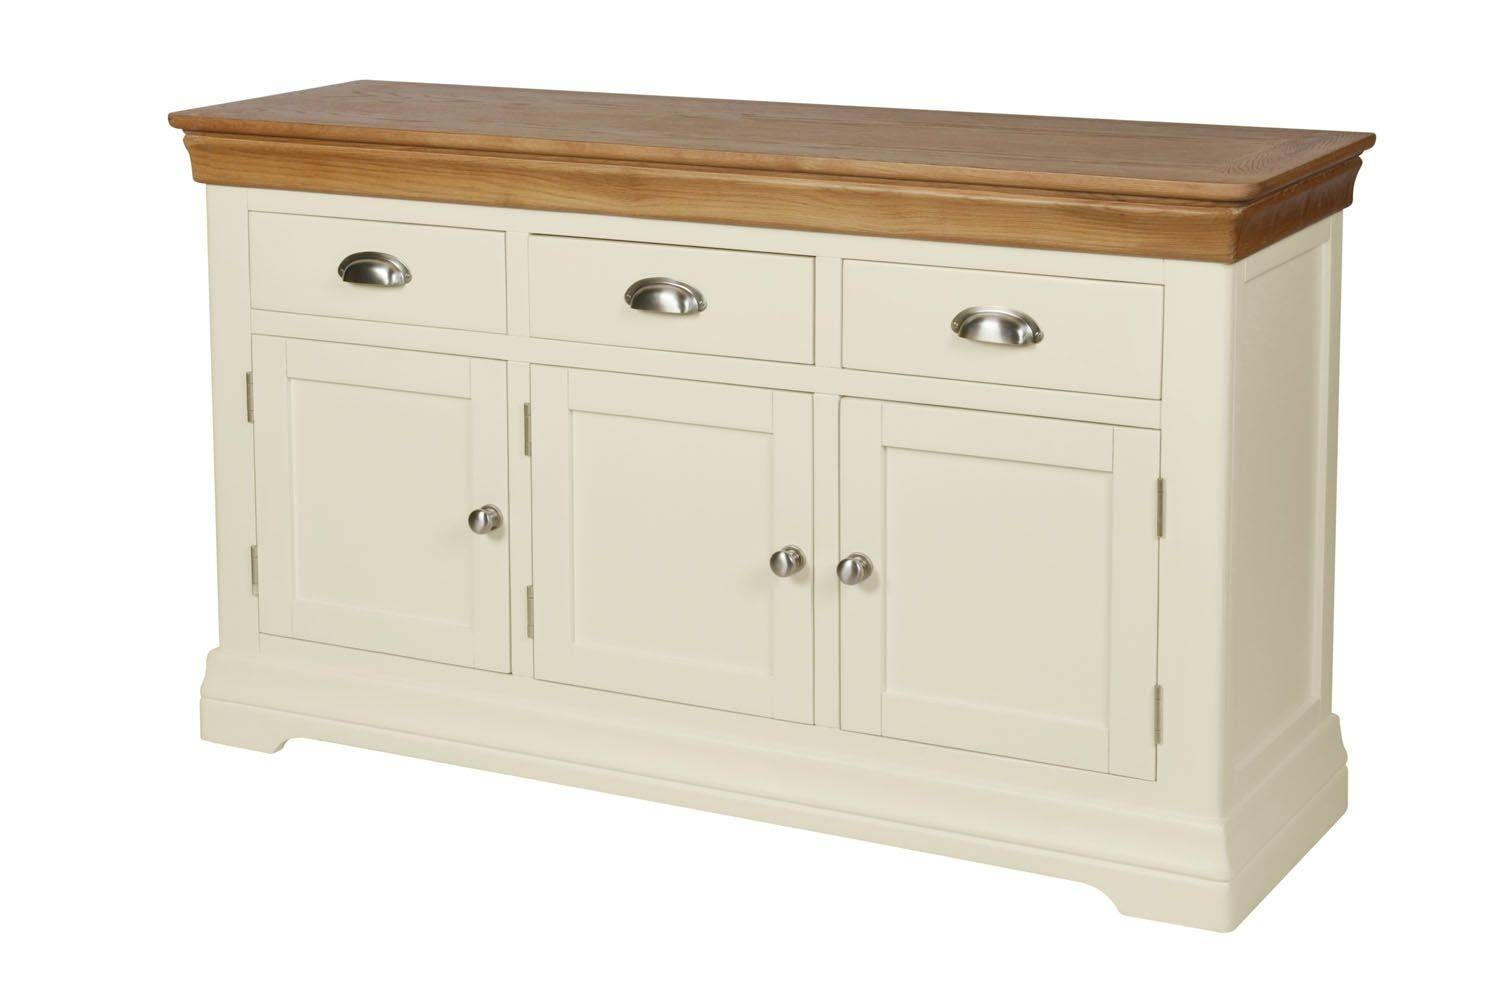 Country Oak Farmhouse 140Cm Cream Painted Sideboard intended for Farmhouse Sideboards (Image 3 of 15)